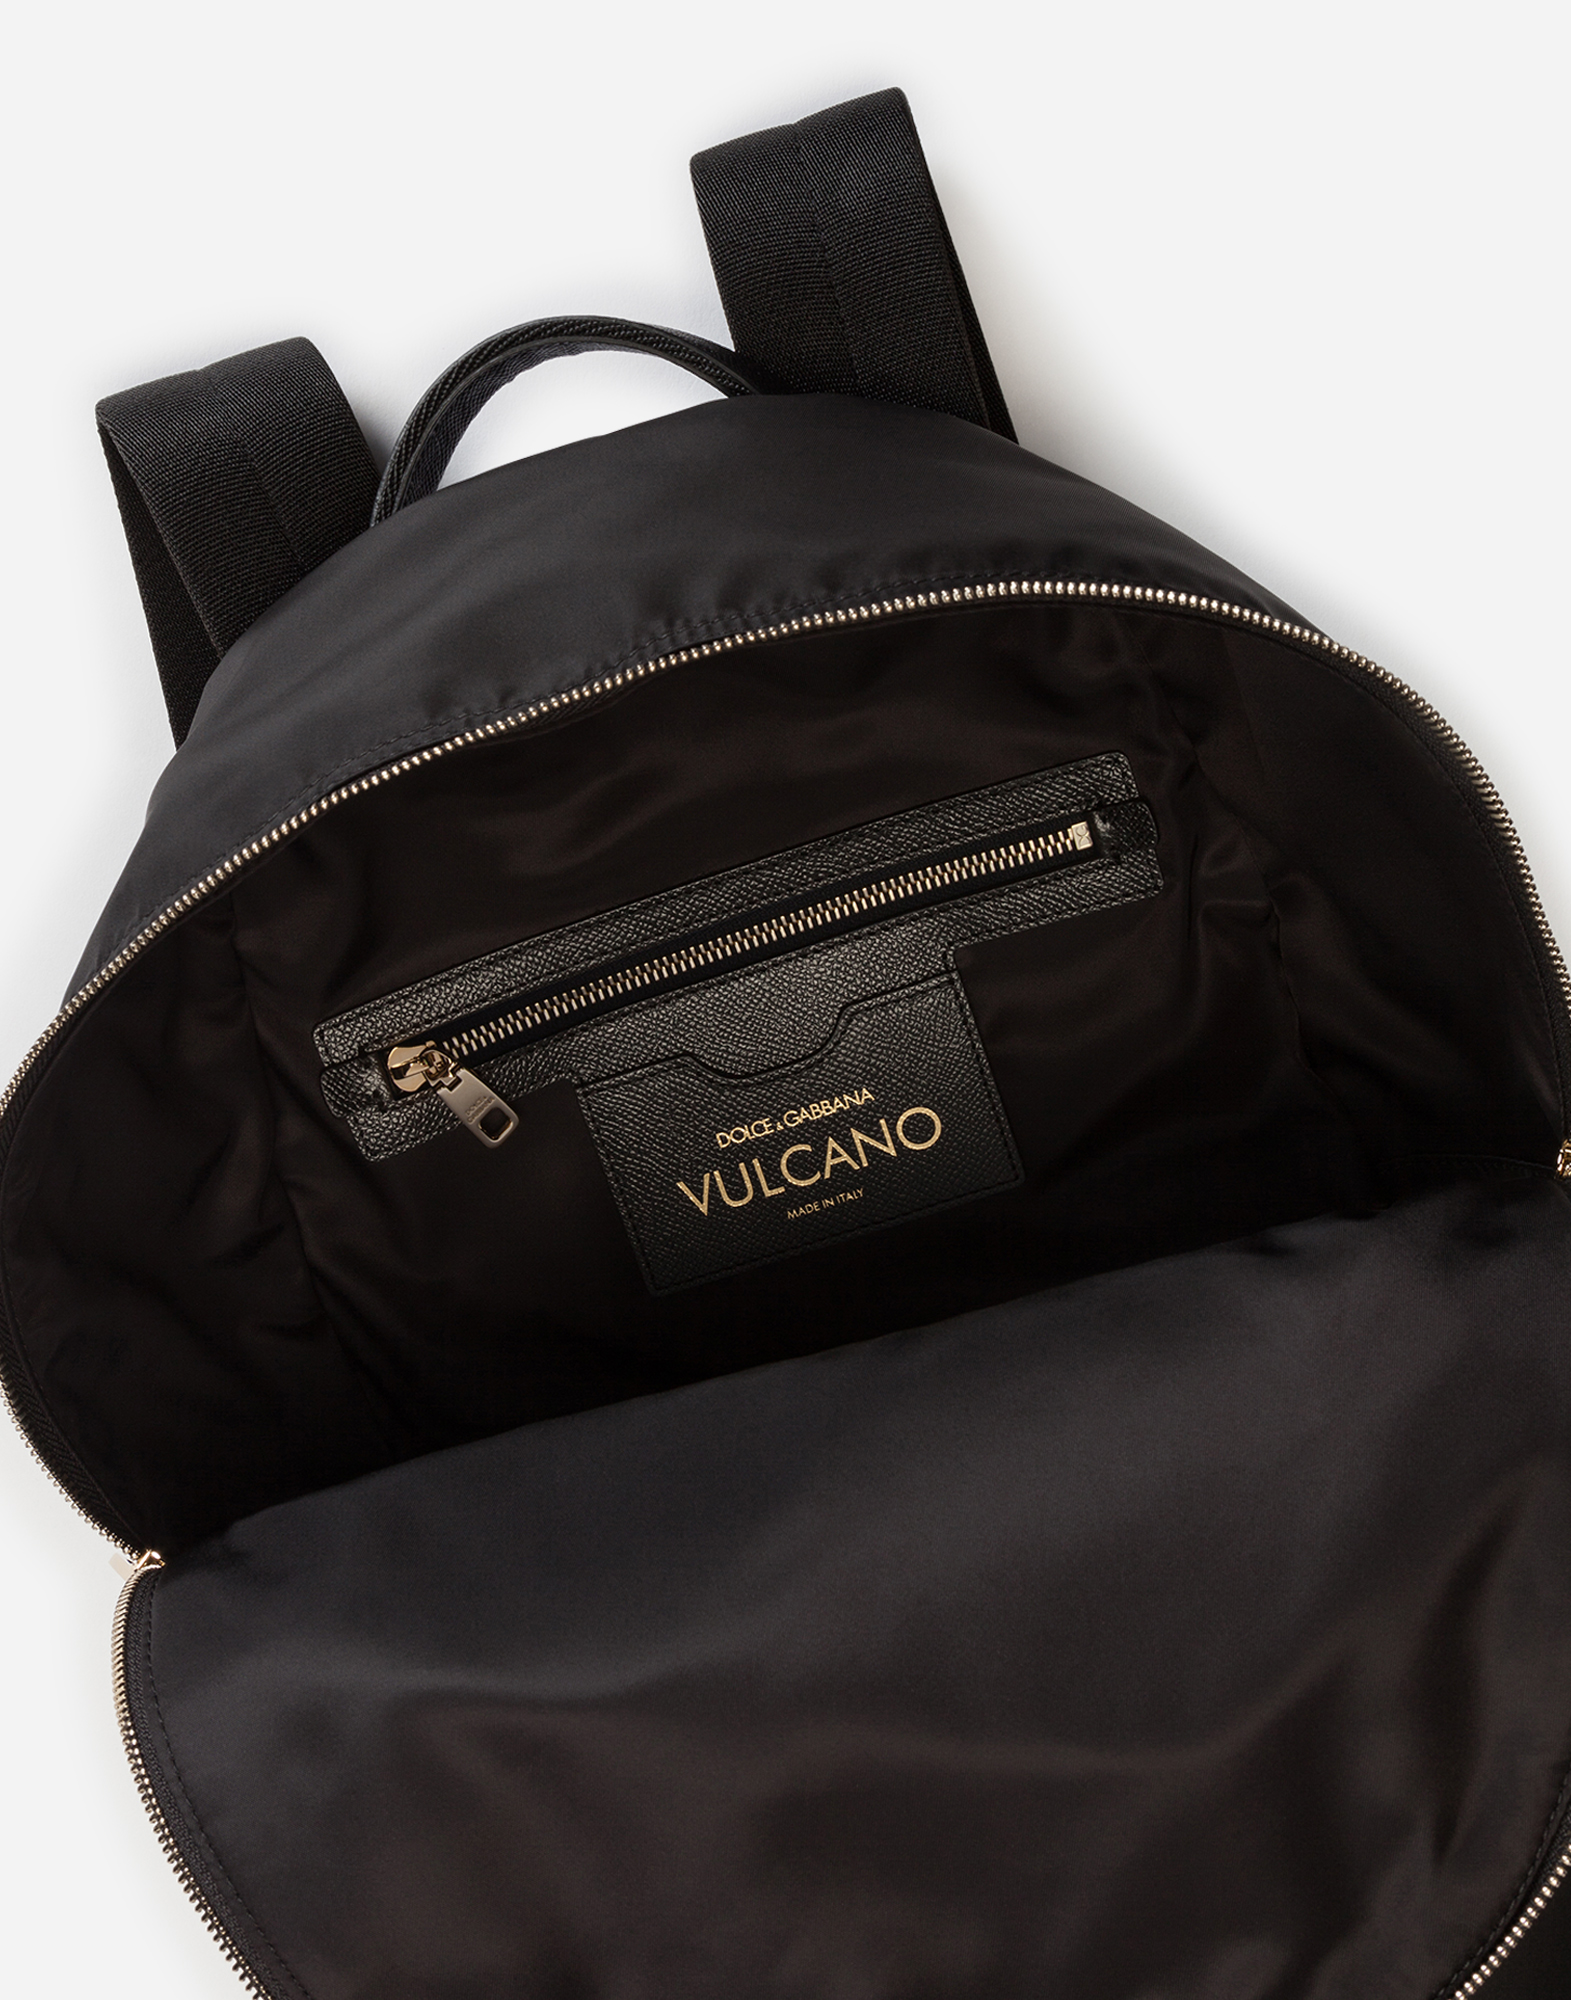 Dolce&Gabbana VULCANO BACKPACK WITH PATCHES OF THE DESIGNERS